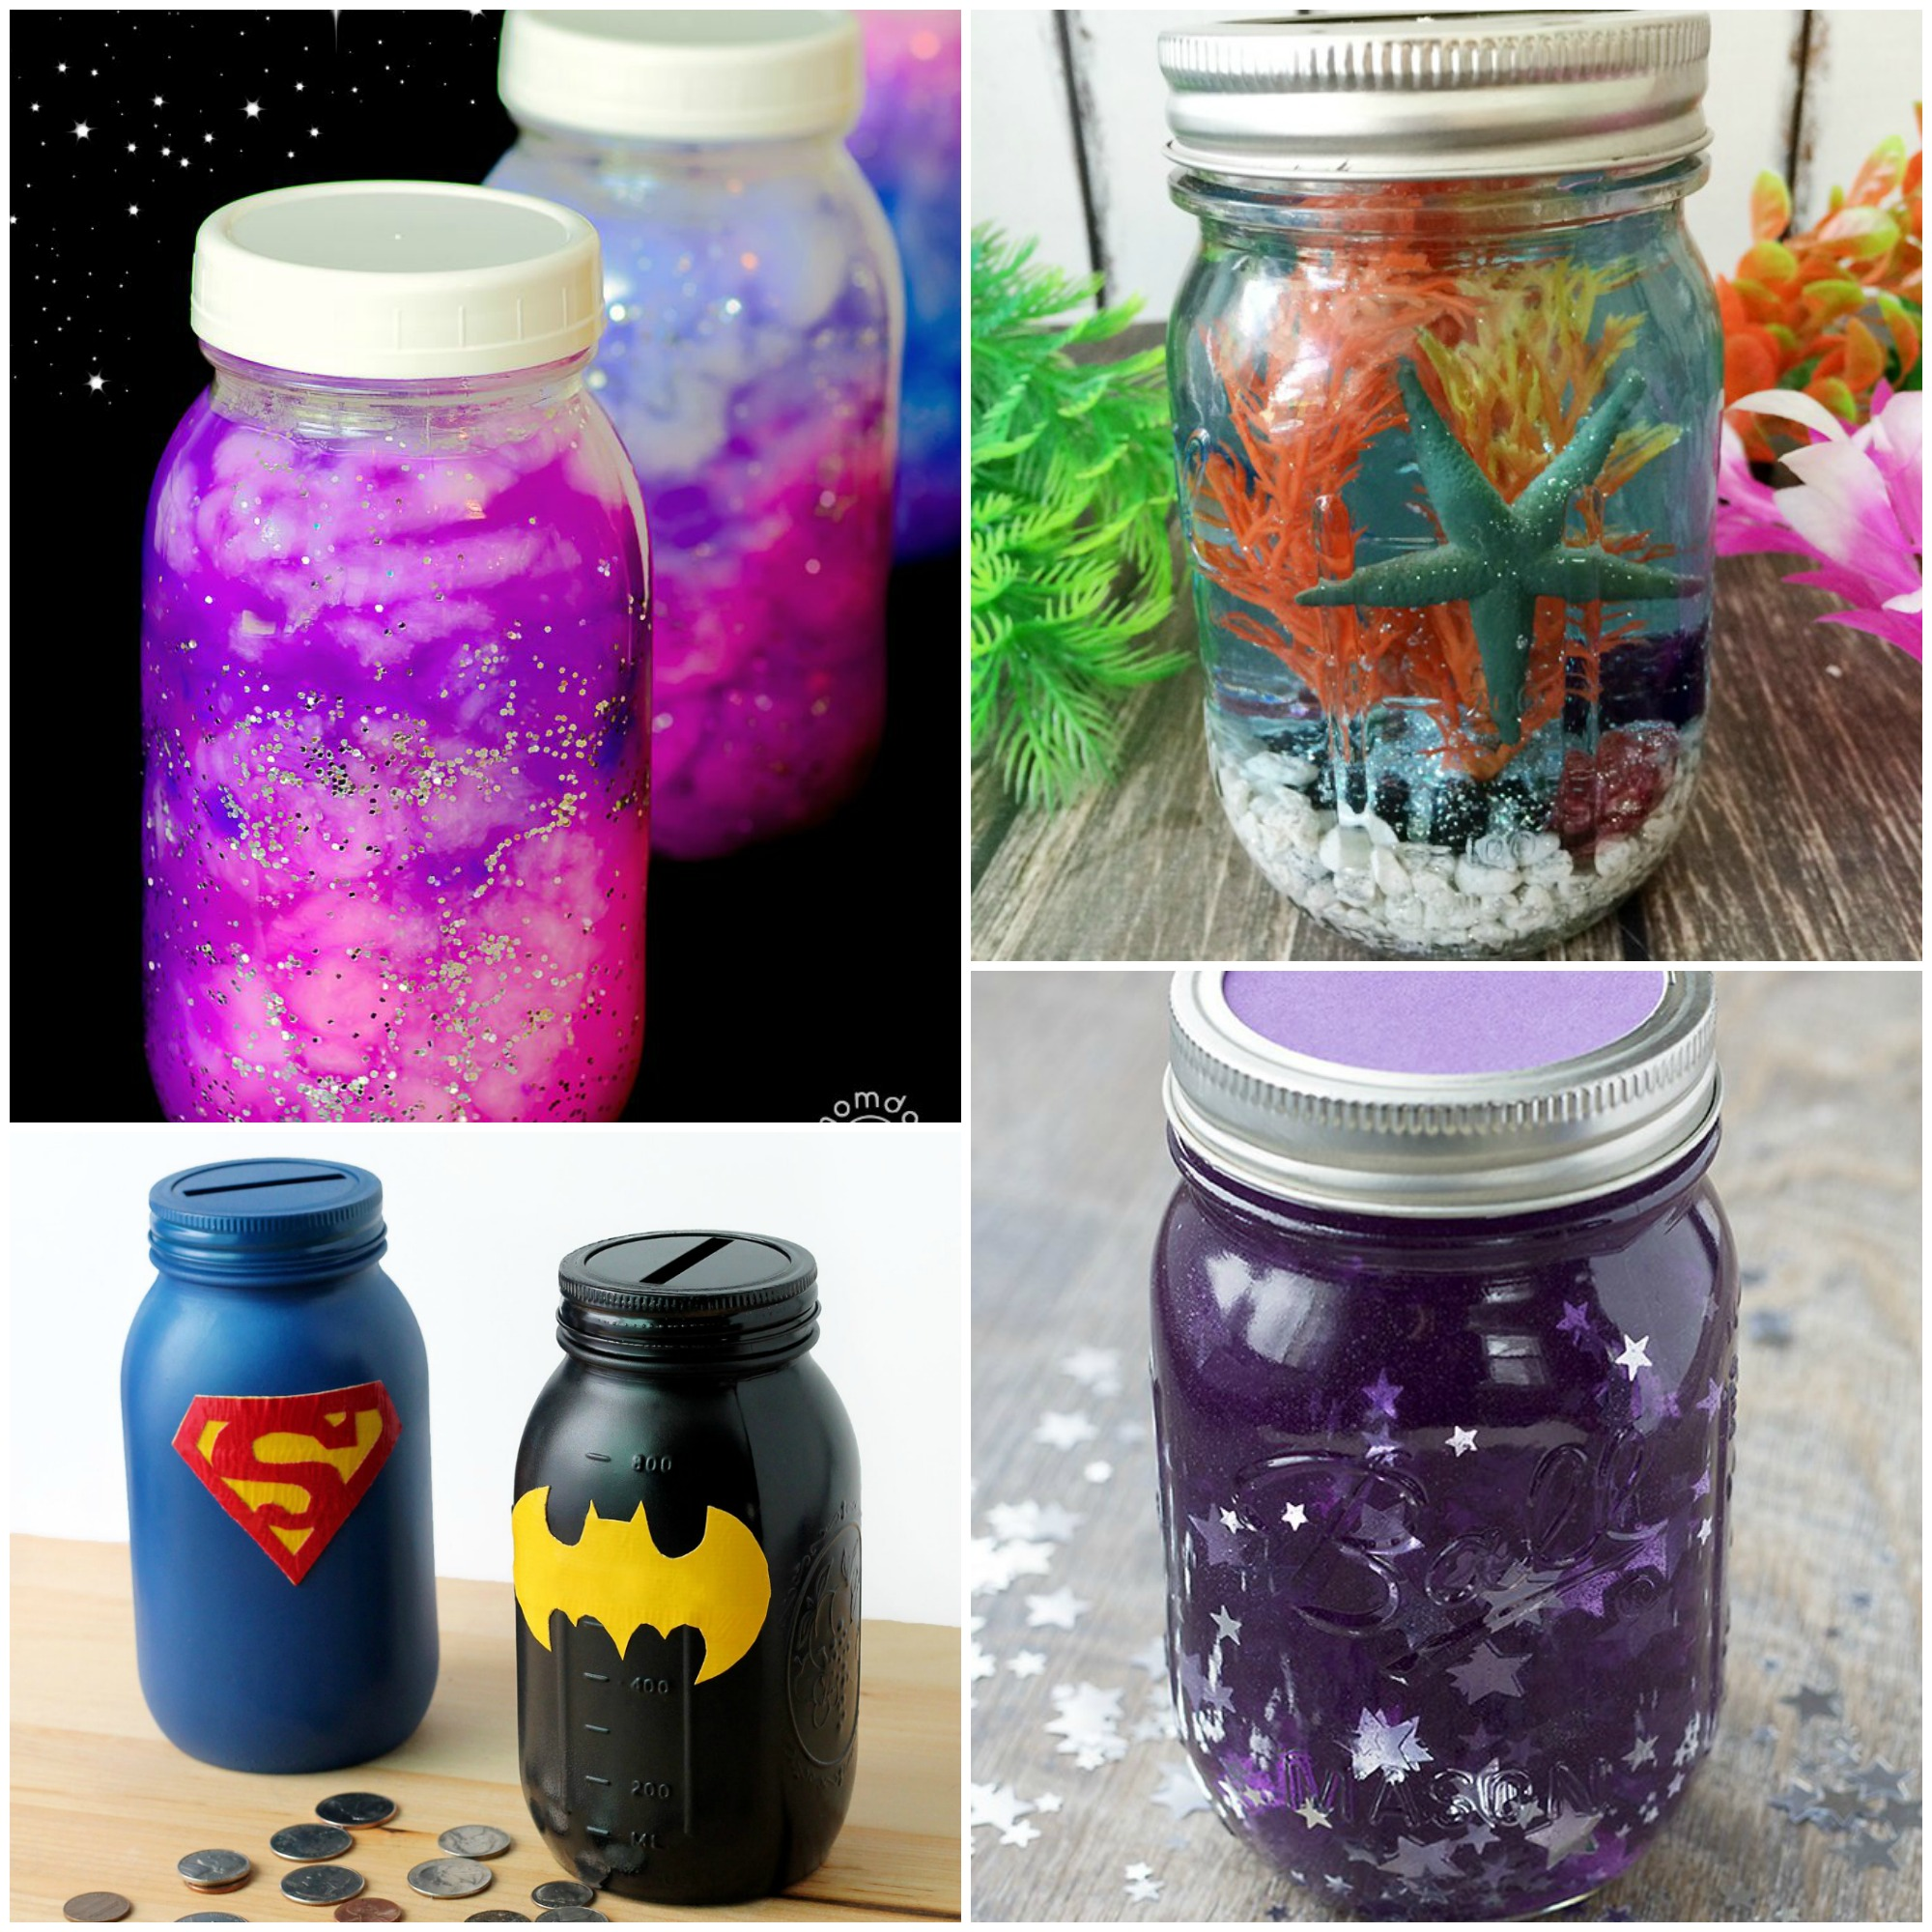 Diy Mason Jar Design Decorating Ideas: 31 Best DIY Mason Jar Ideas